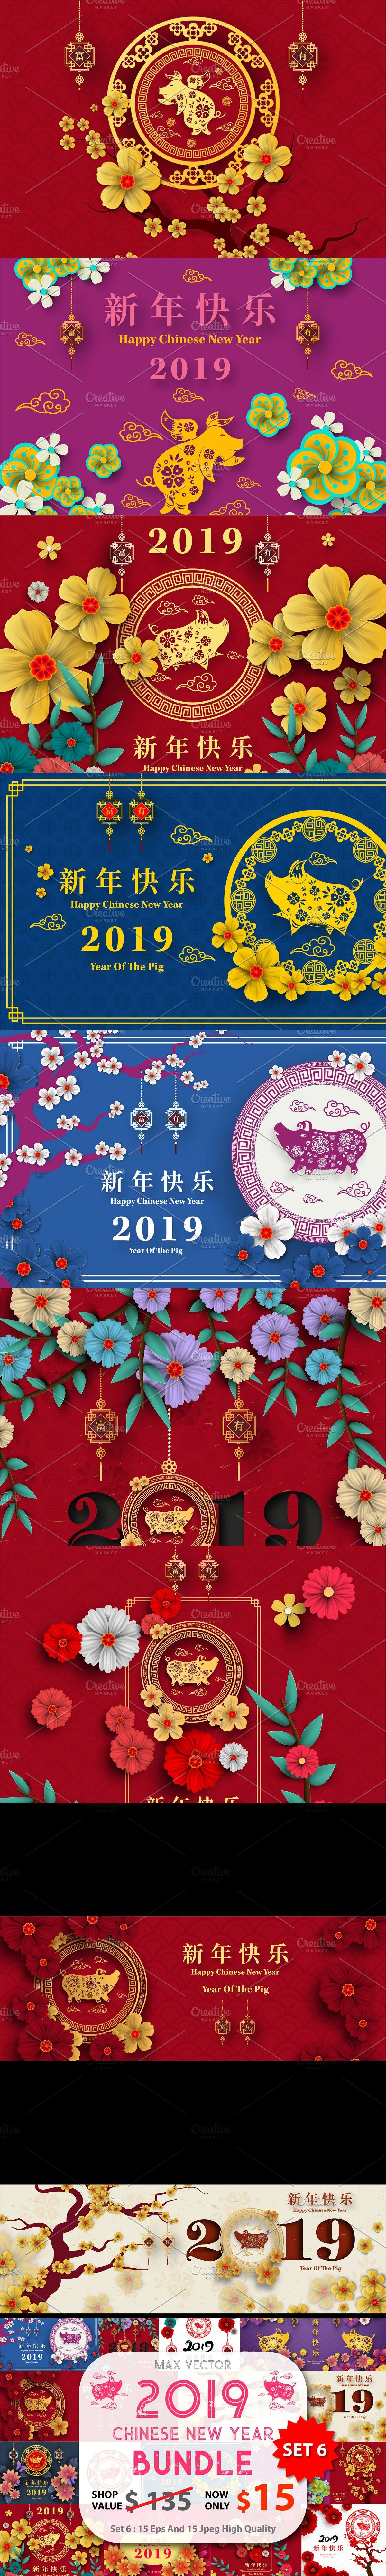 Set Of 2019 Chinese New Year Card Chinese New Year Card New Year Card Chinese New Year Greeting